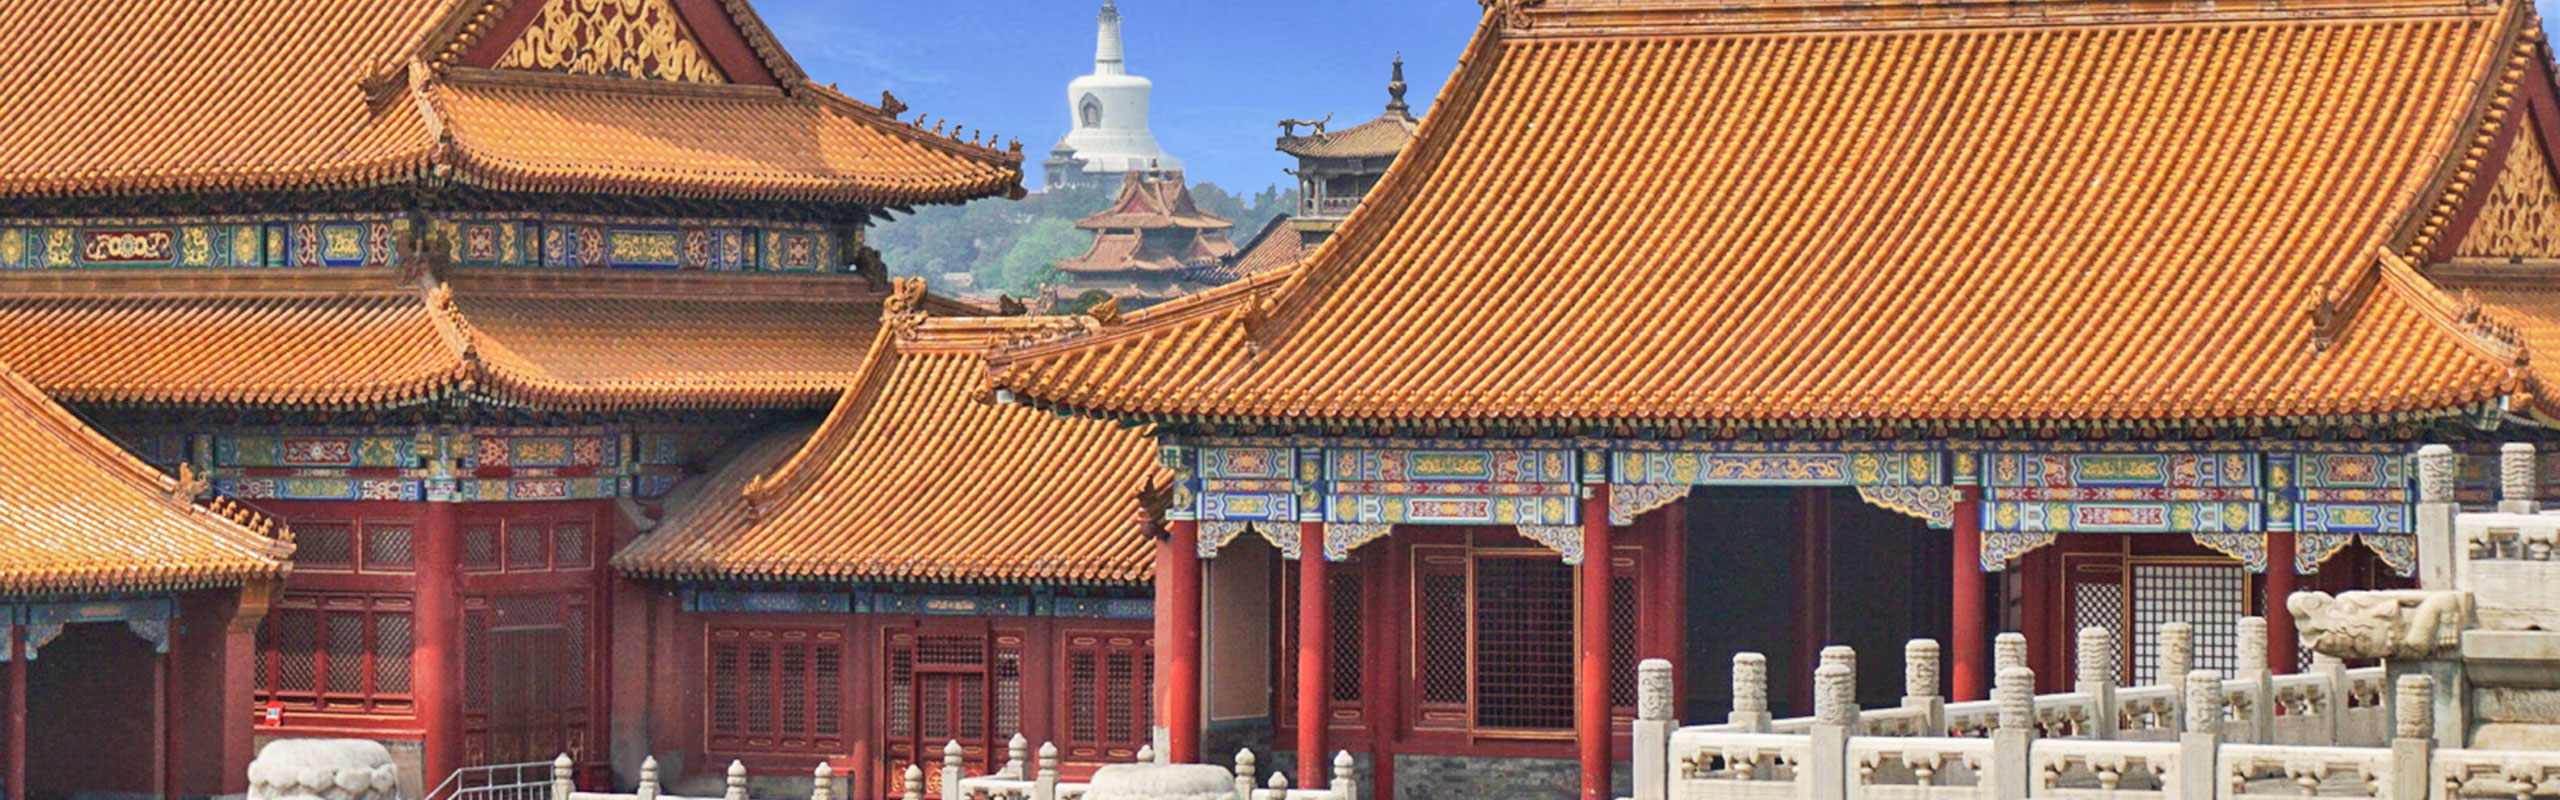 2-Day Beijing Tour from Tianjin Cruise Port